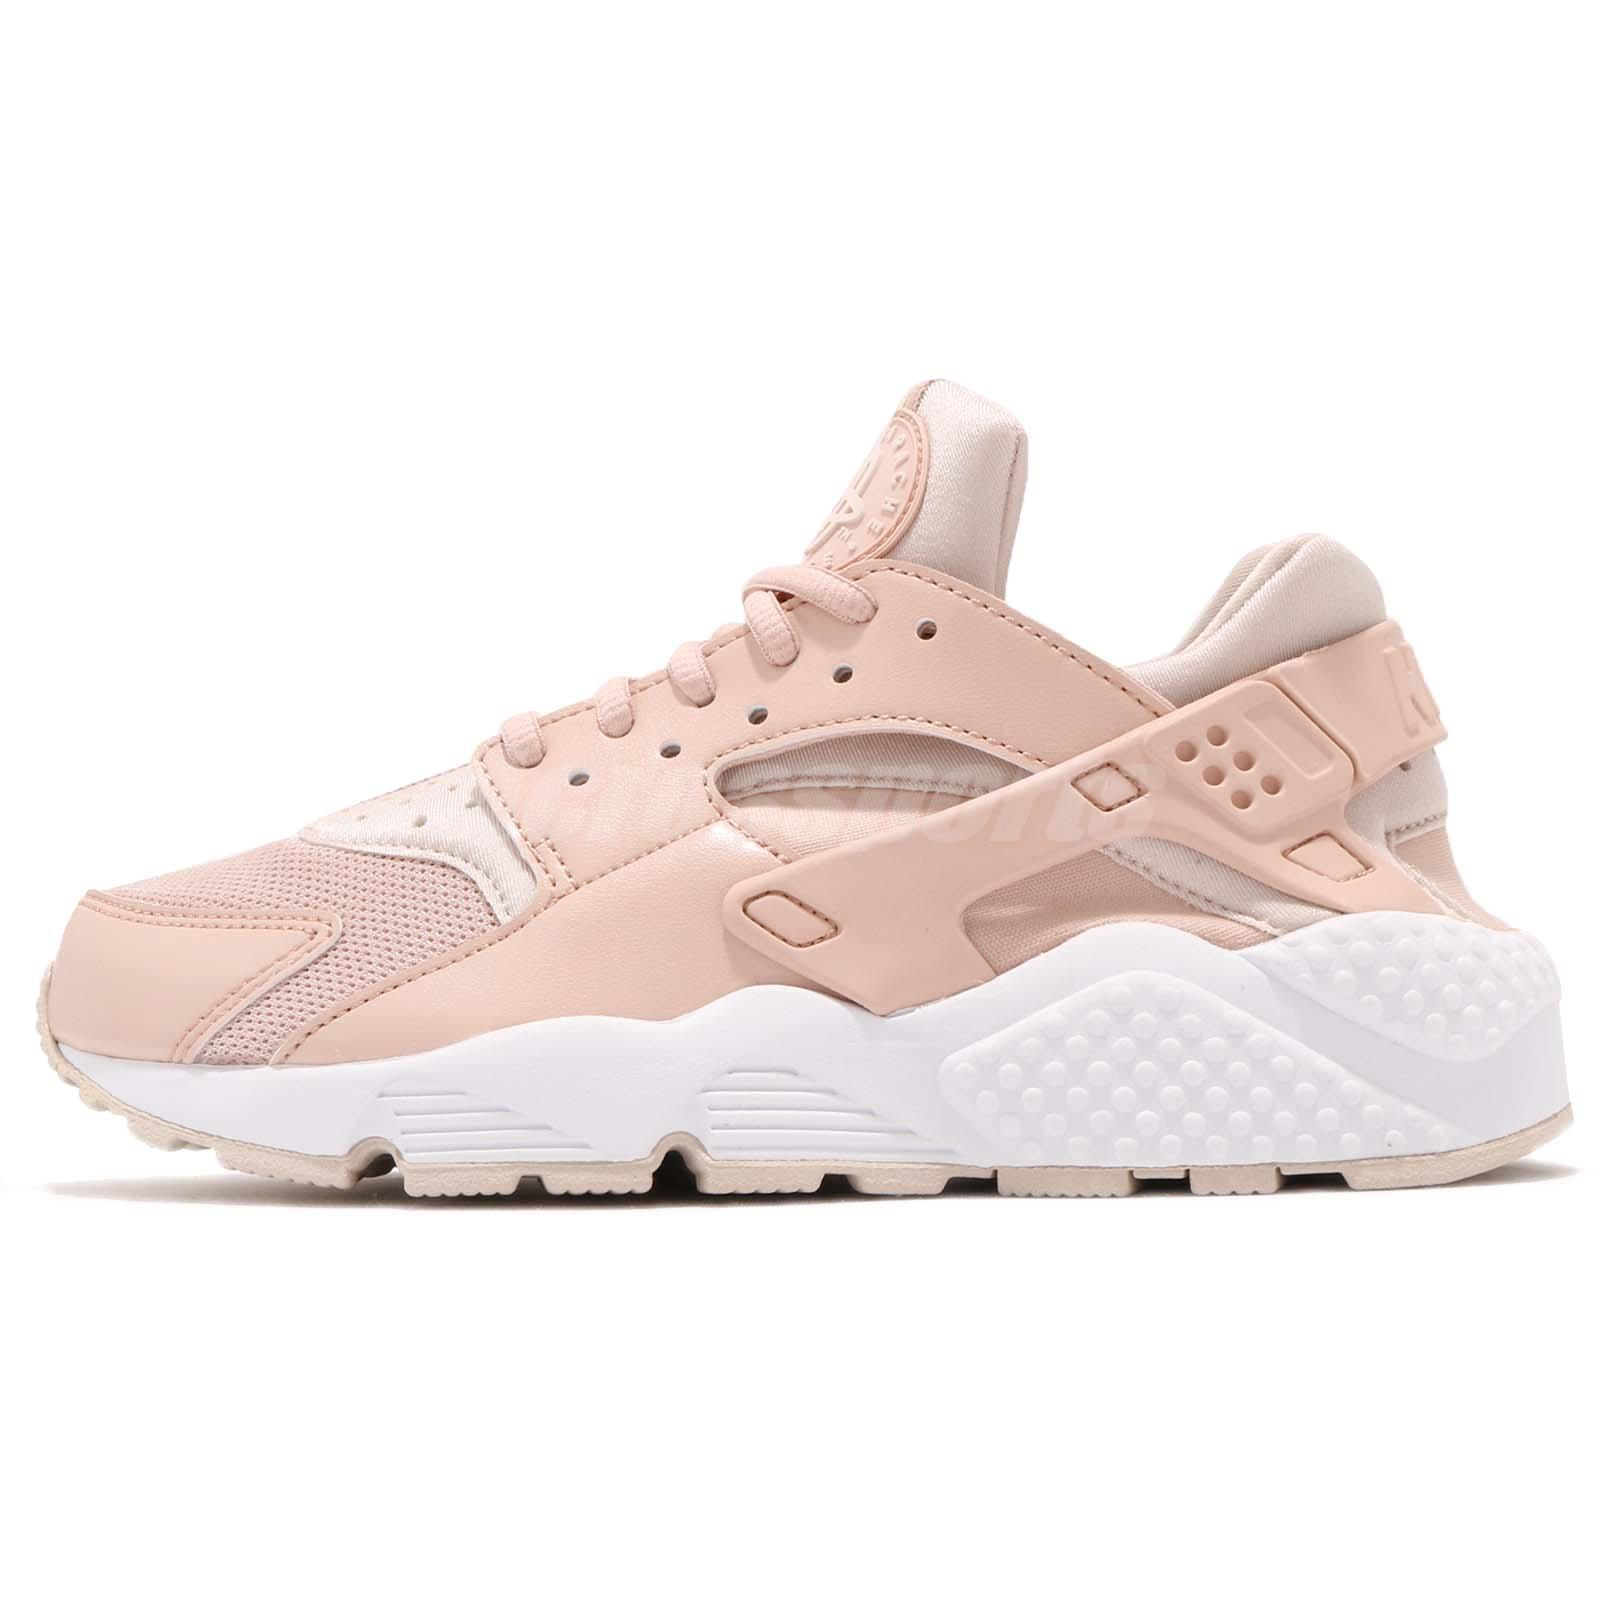 new product 6c6cd de341 Nike Wmns Air Huarache Run Particle Beige Desert Sand Women Shoes 634835-202